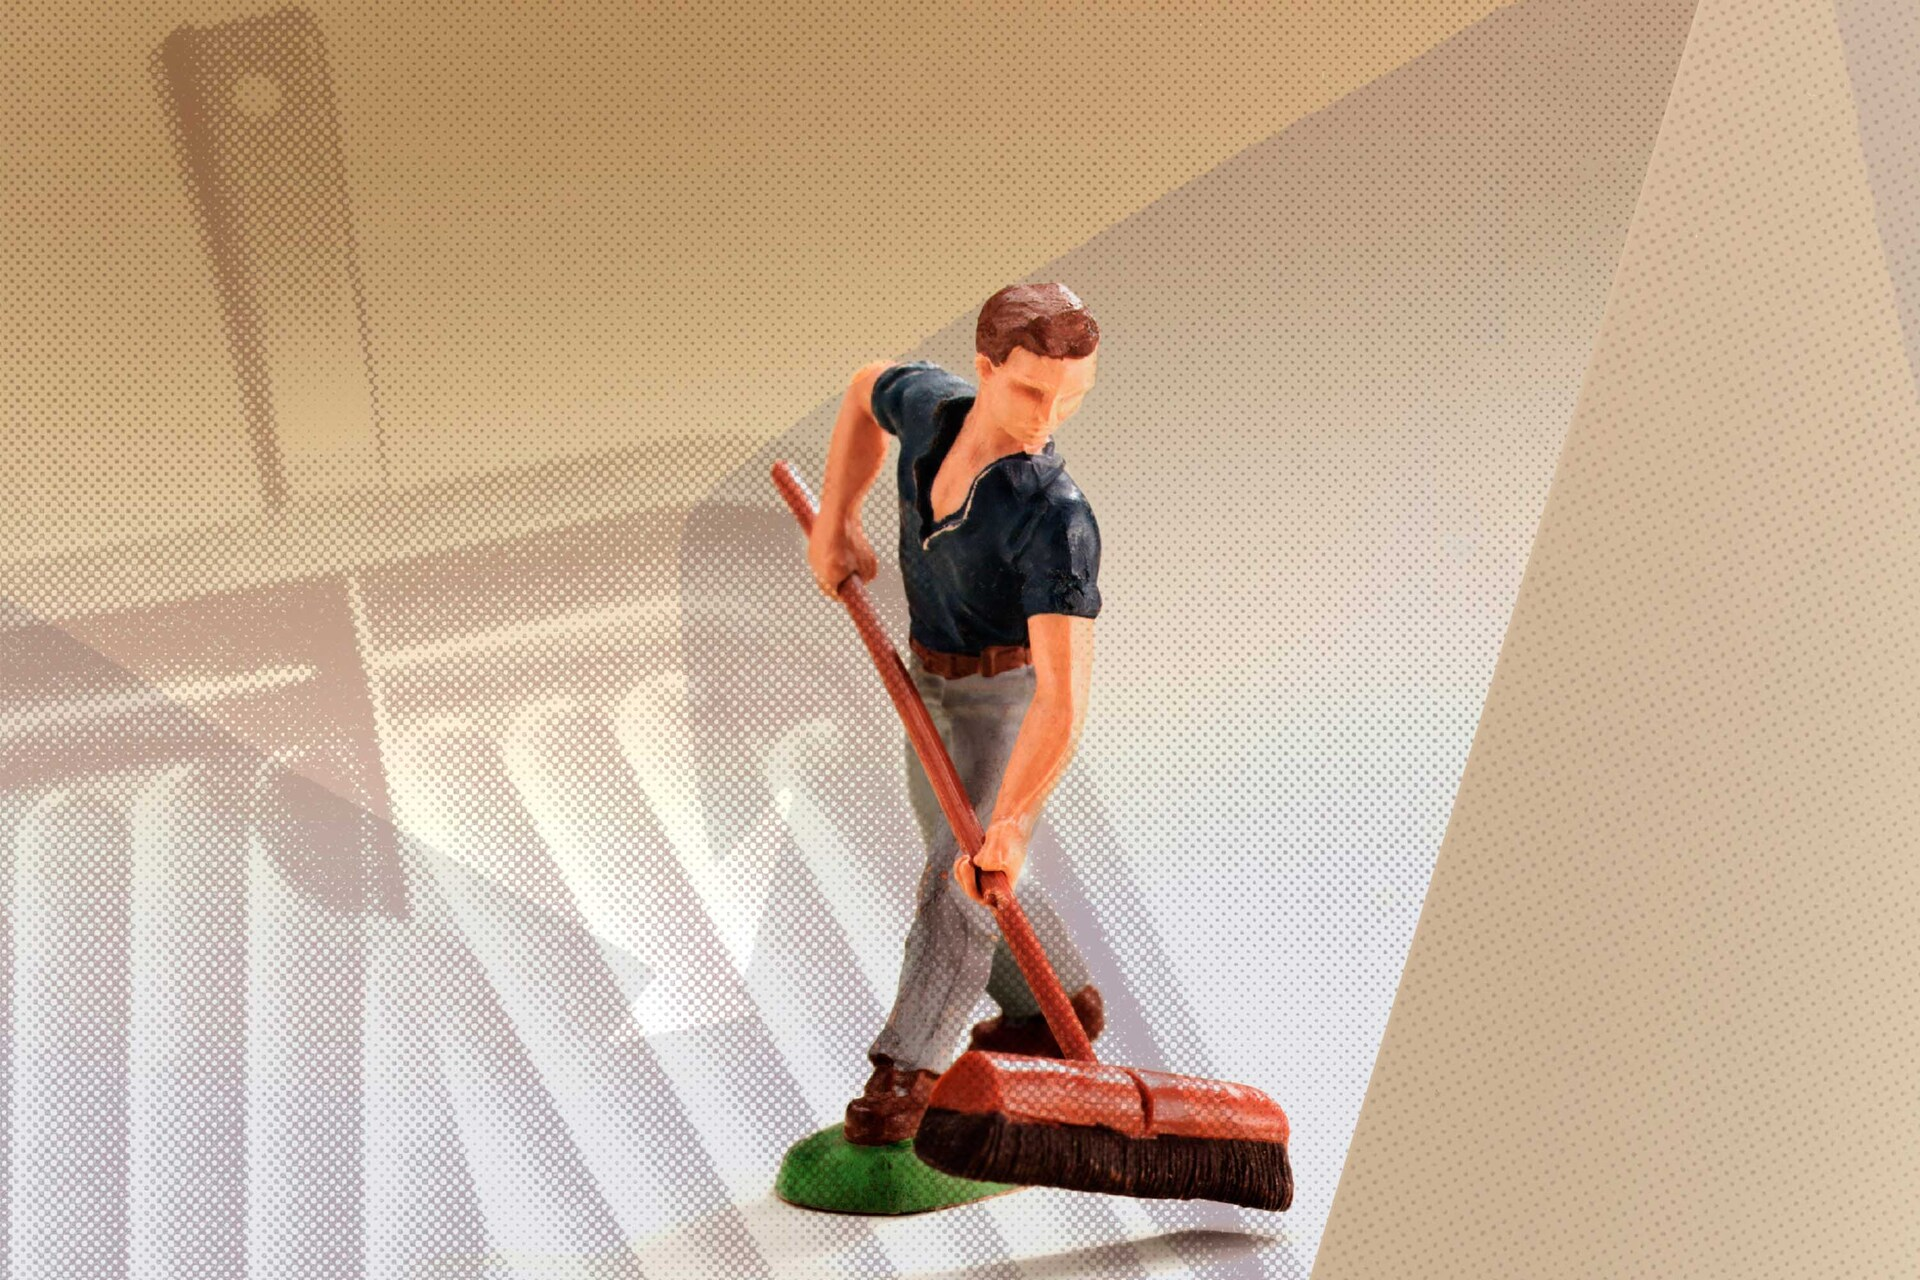 Manual handling risk assessments - training for cleaners